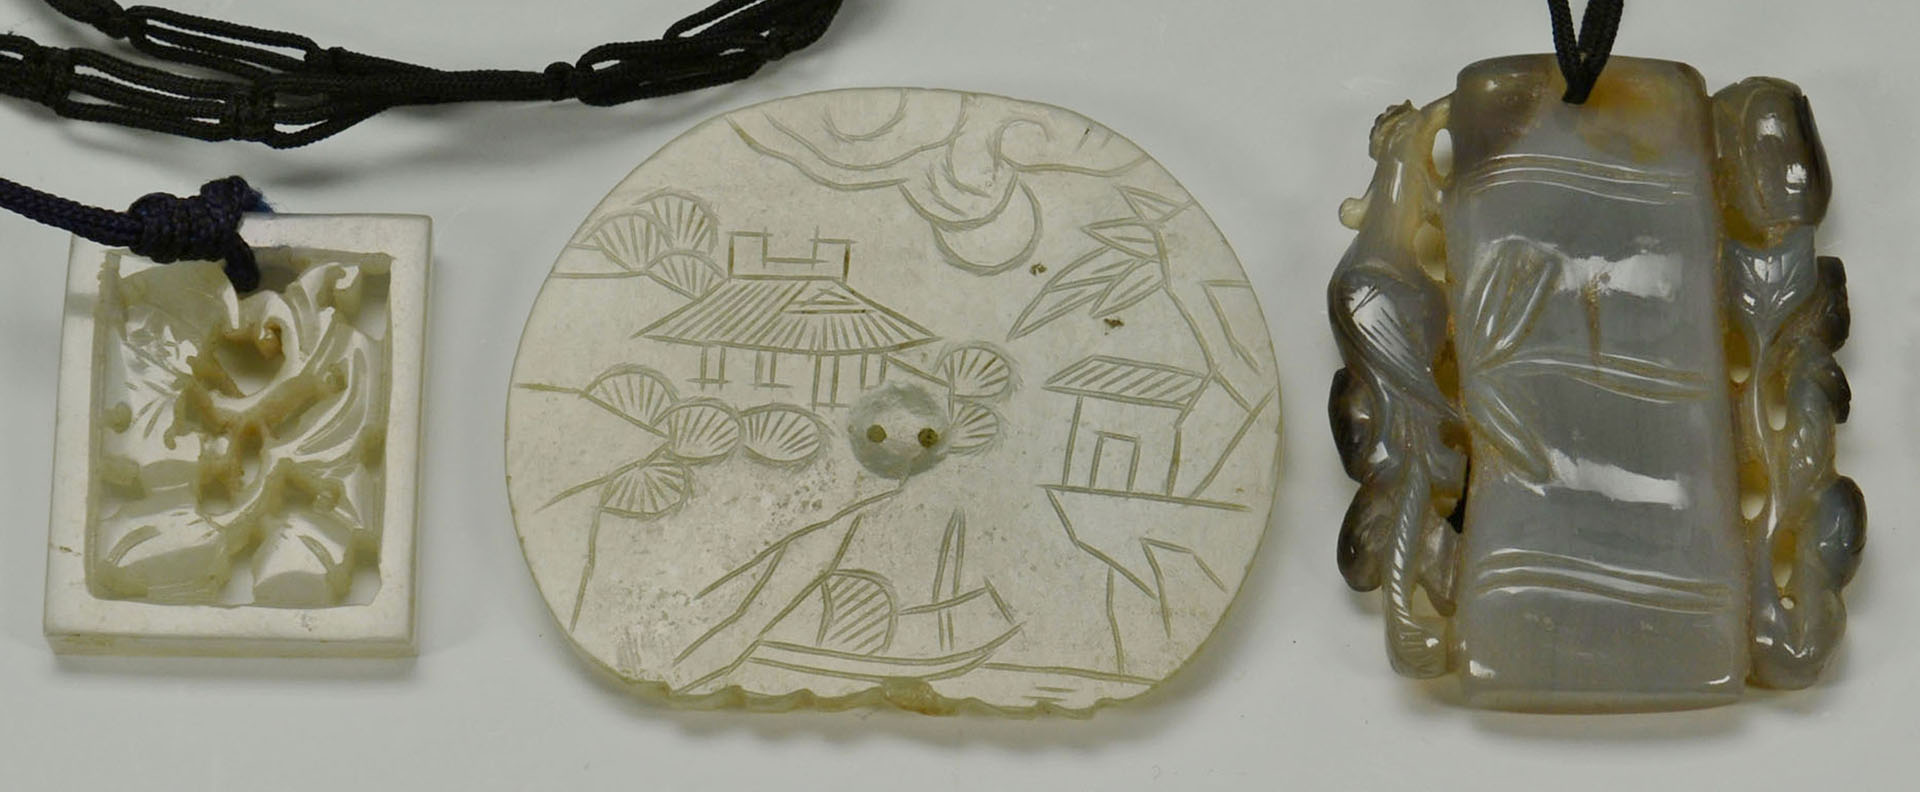 Three Chinese Jade Plaque Pendants plus other